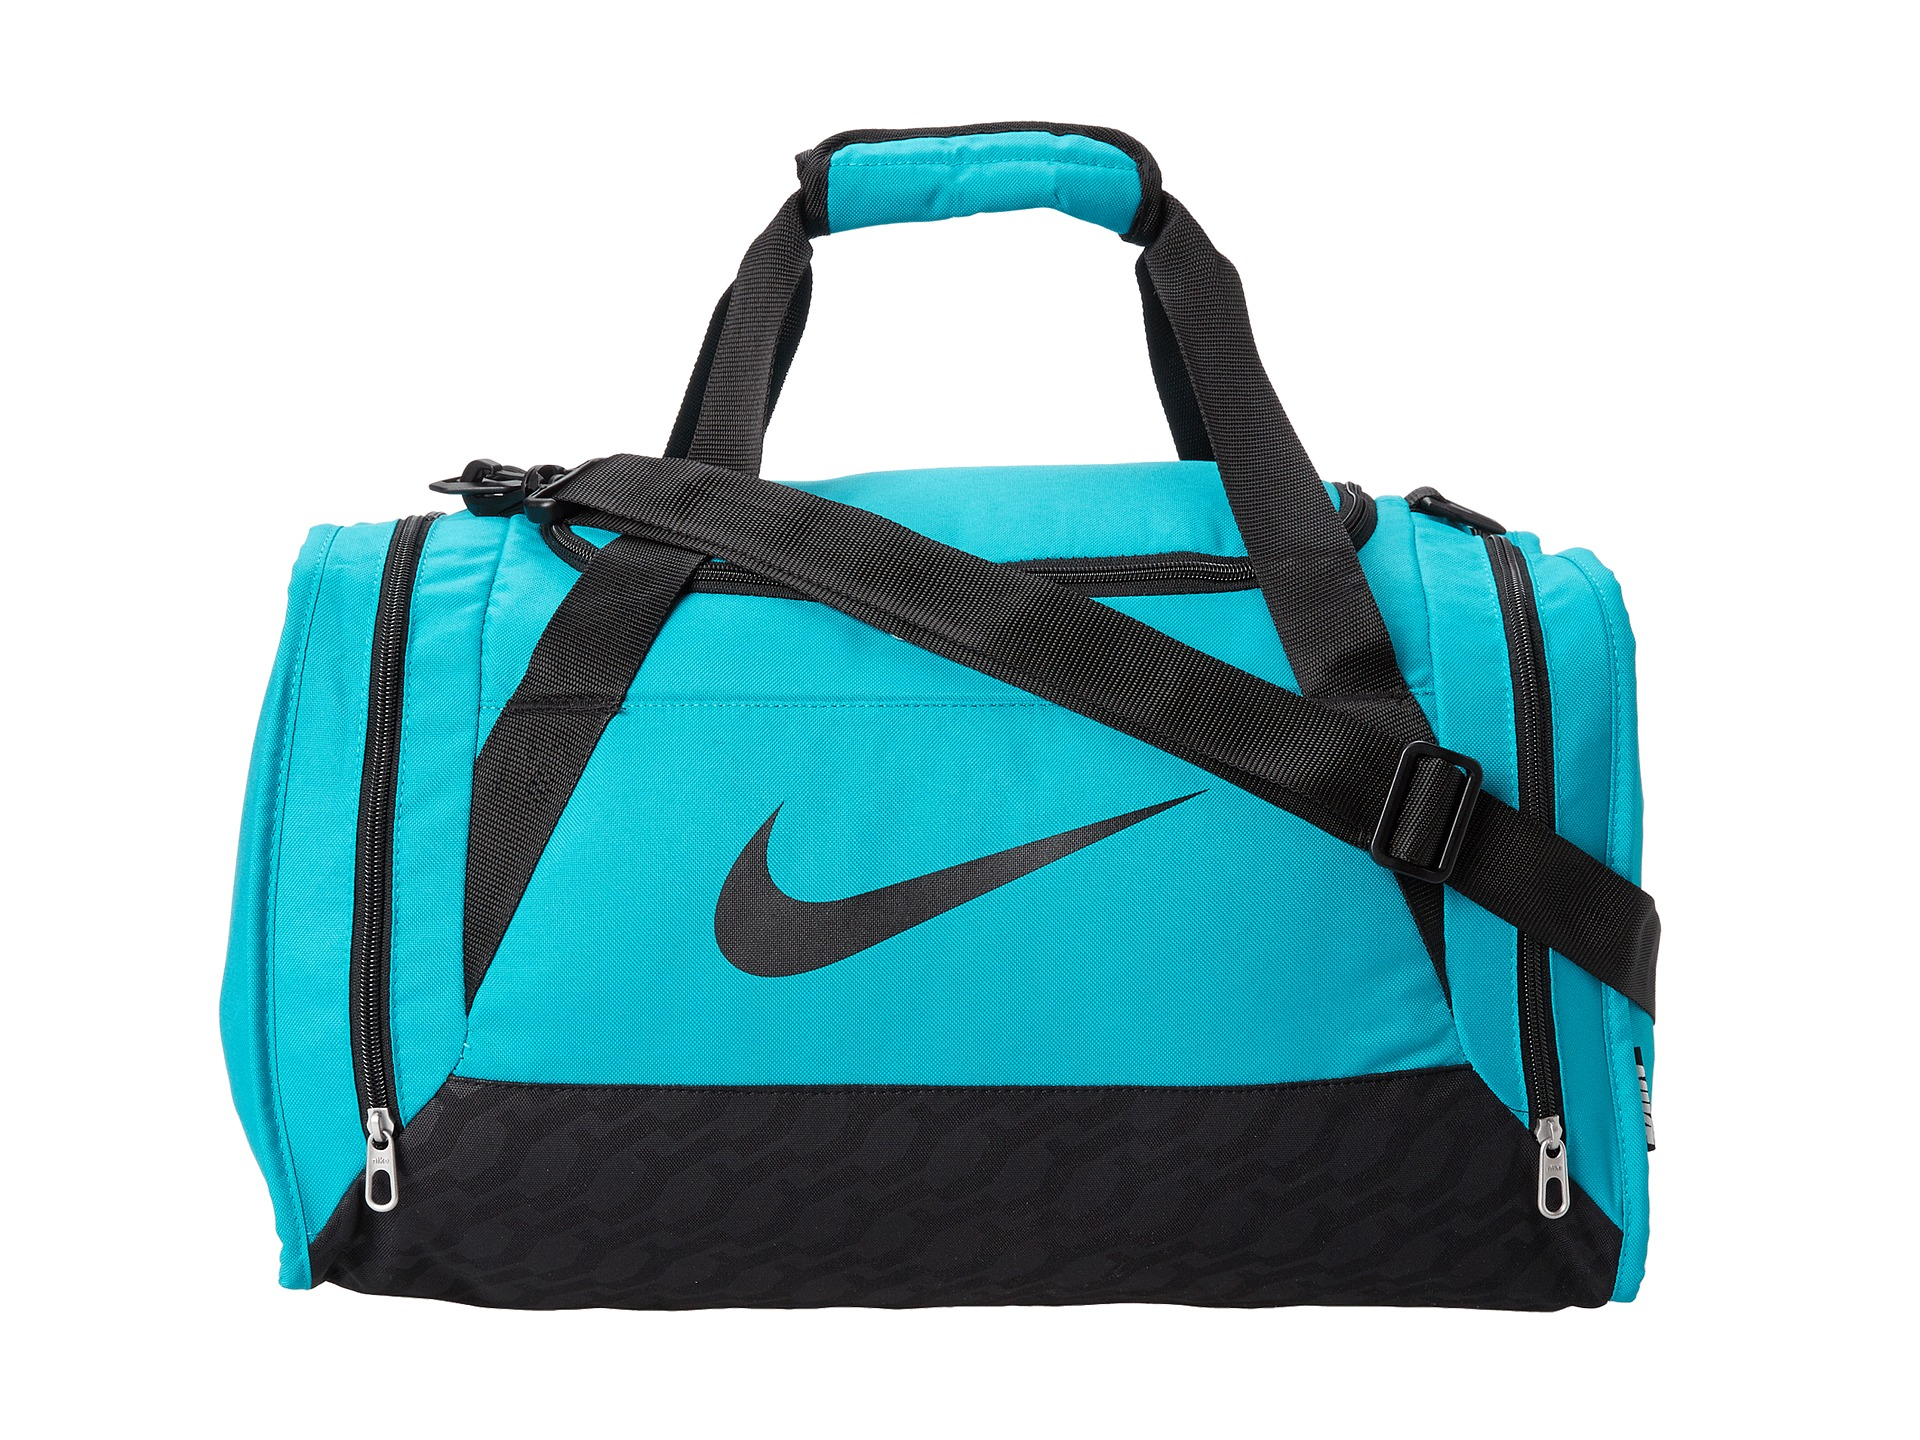 Inmundicia malo incluir  The Nike Brasilia 6 Small Duffel